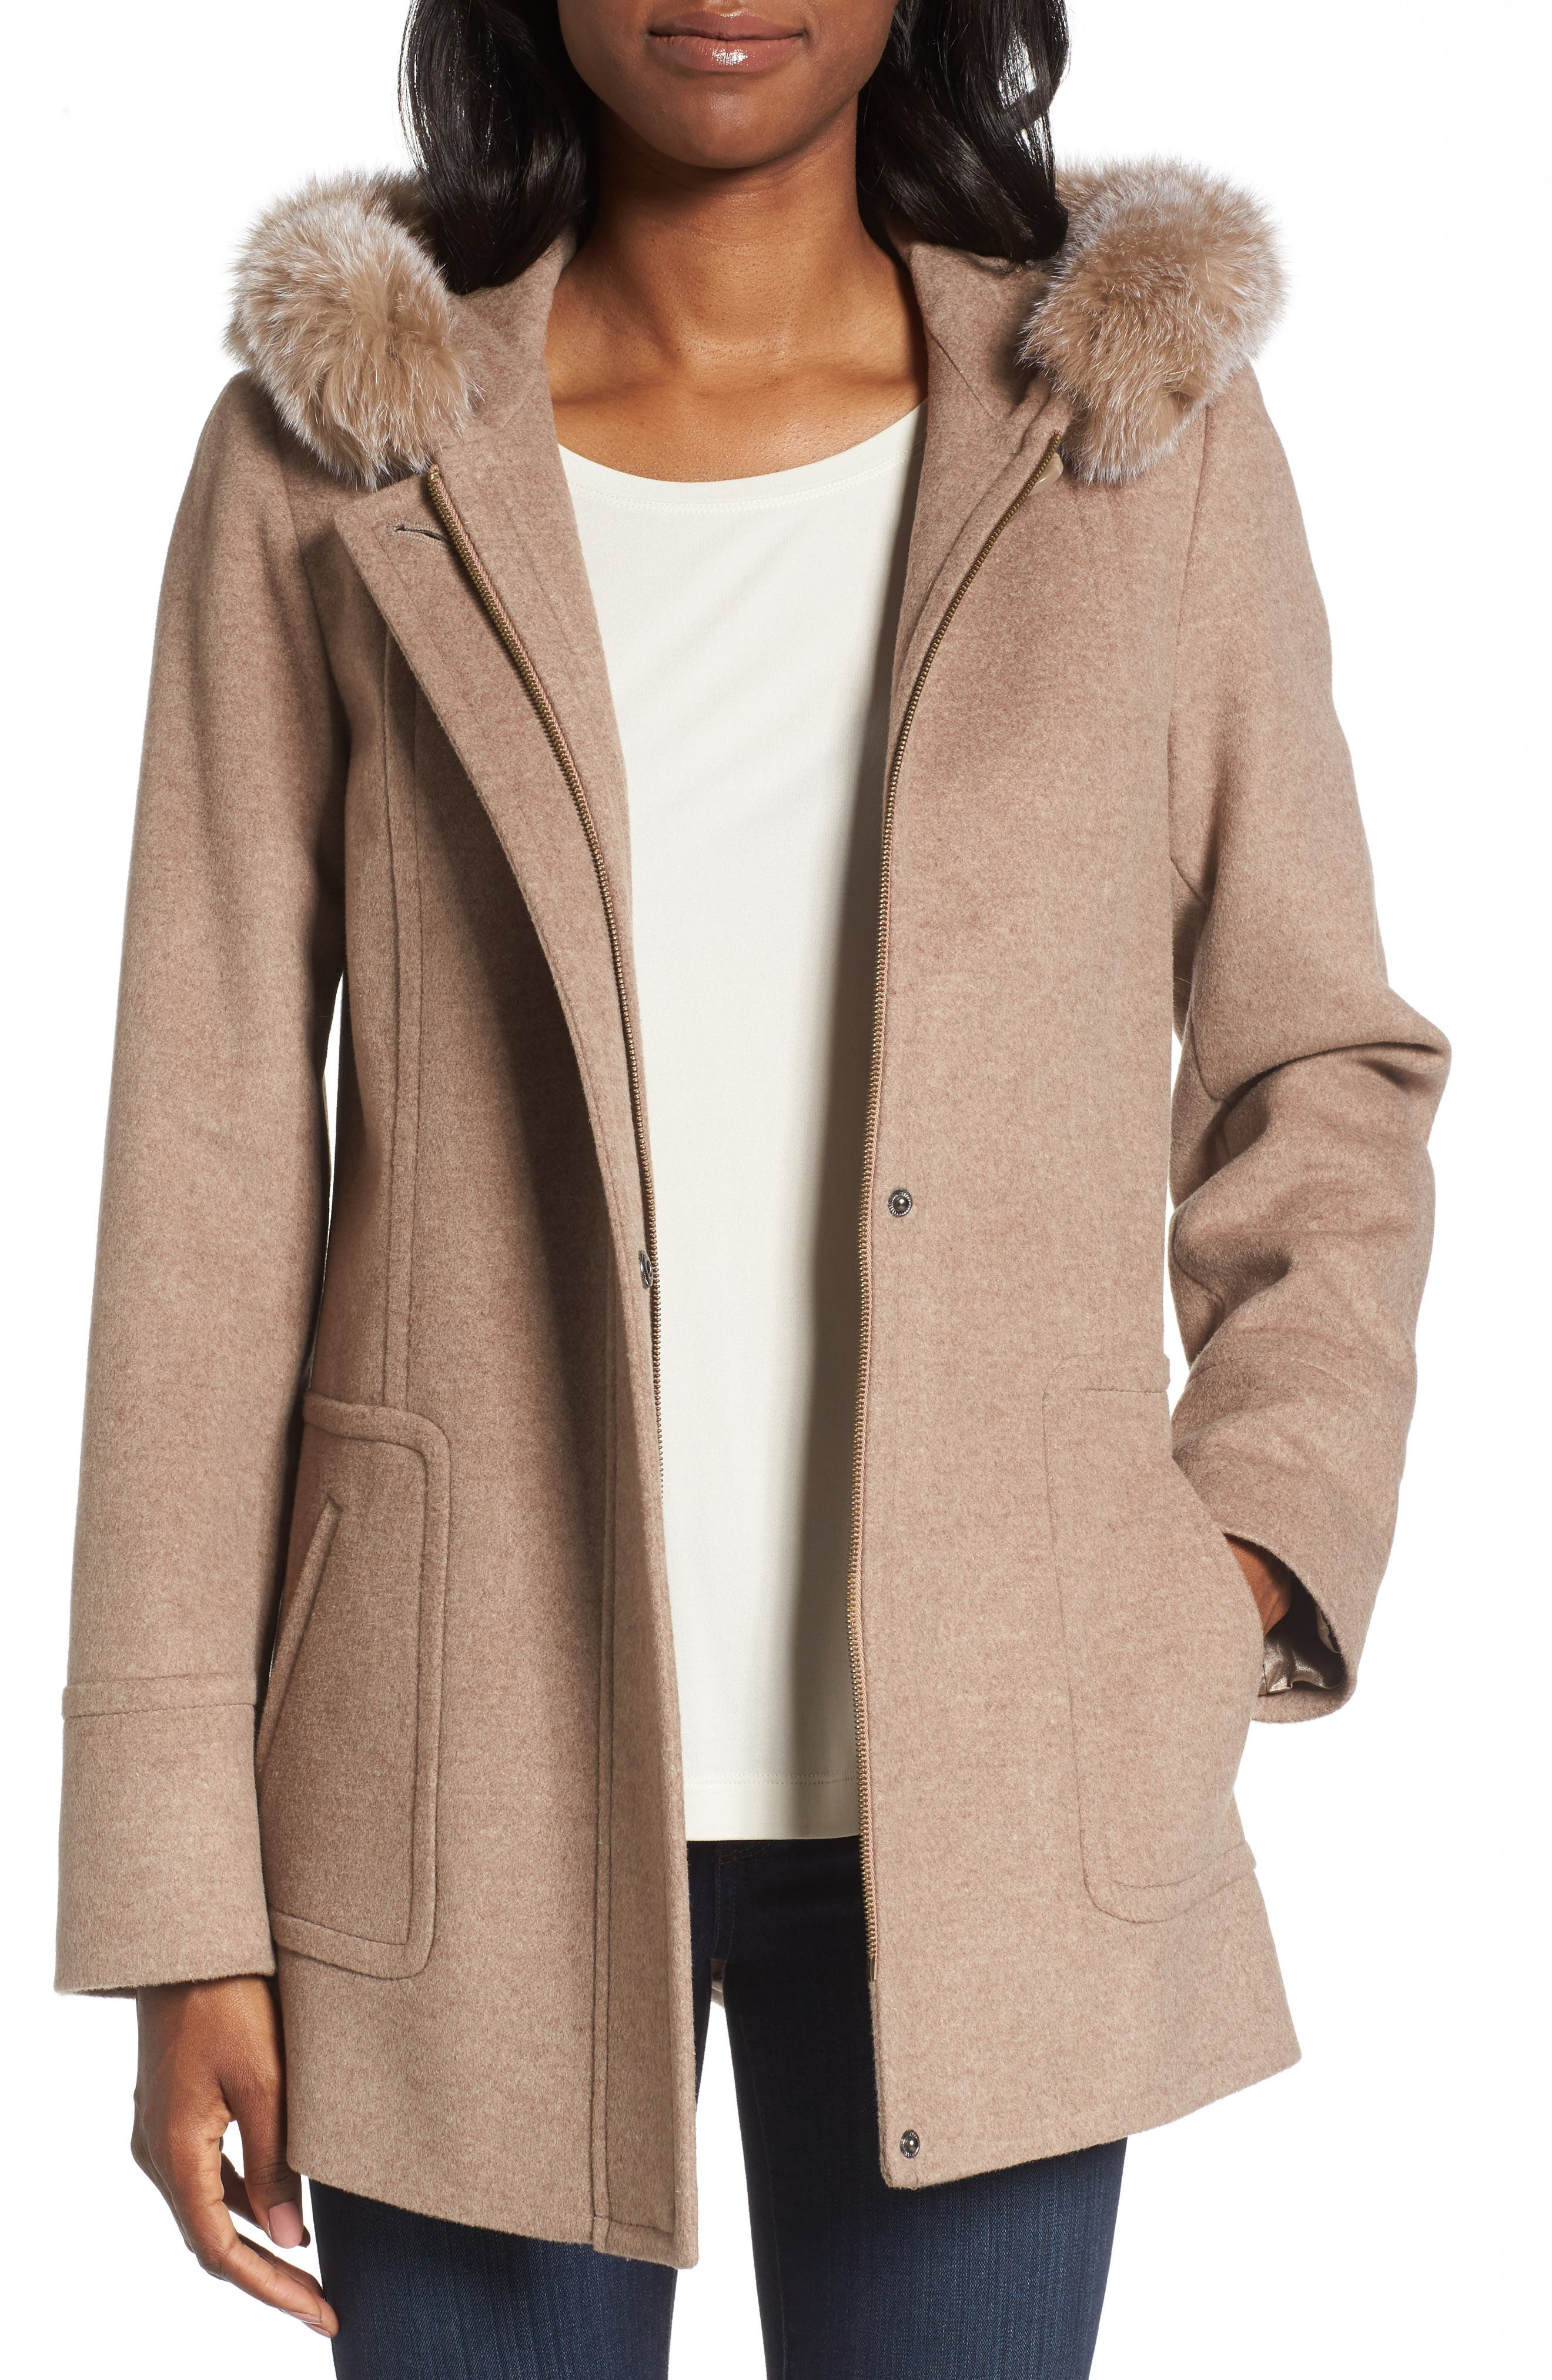 Sachi Hooded Wool Blend Coat with Genuine Fox Fur Trim (Regular & Petite)